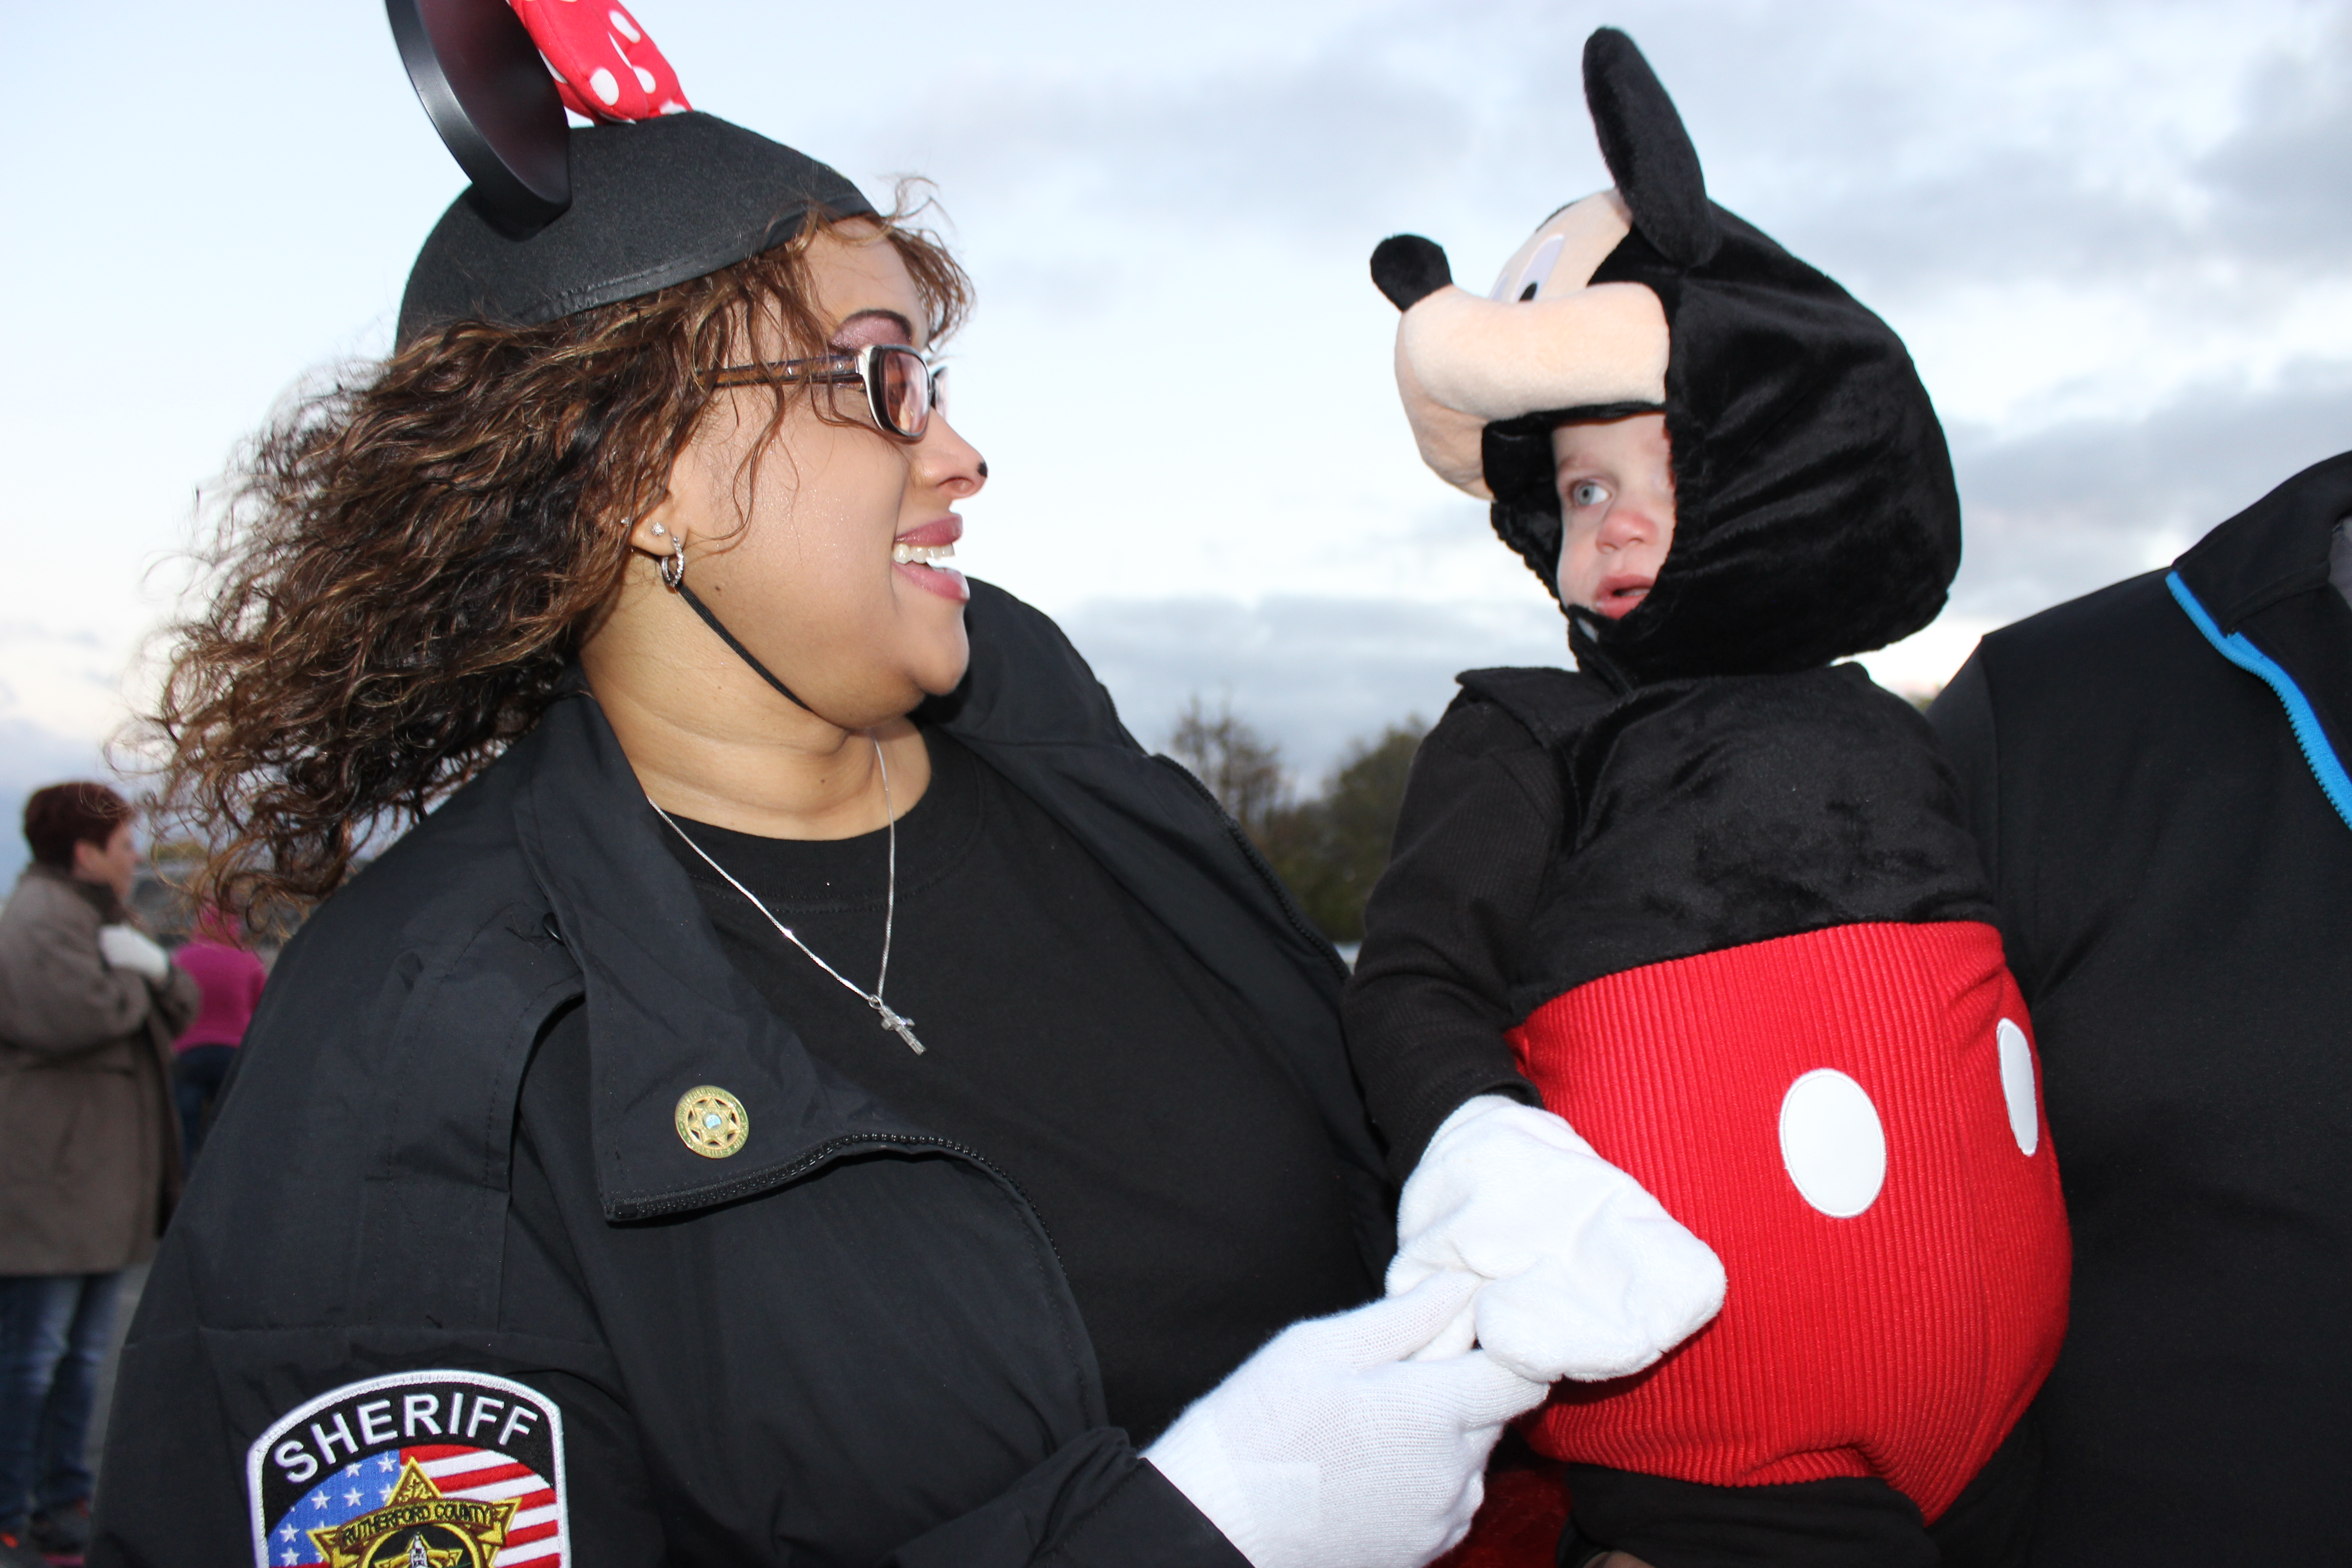 Trick or Treating at the Rutherford County Sheriff's Office